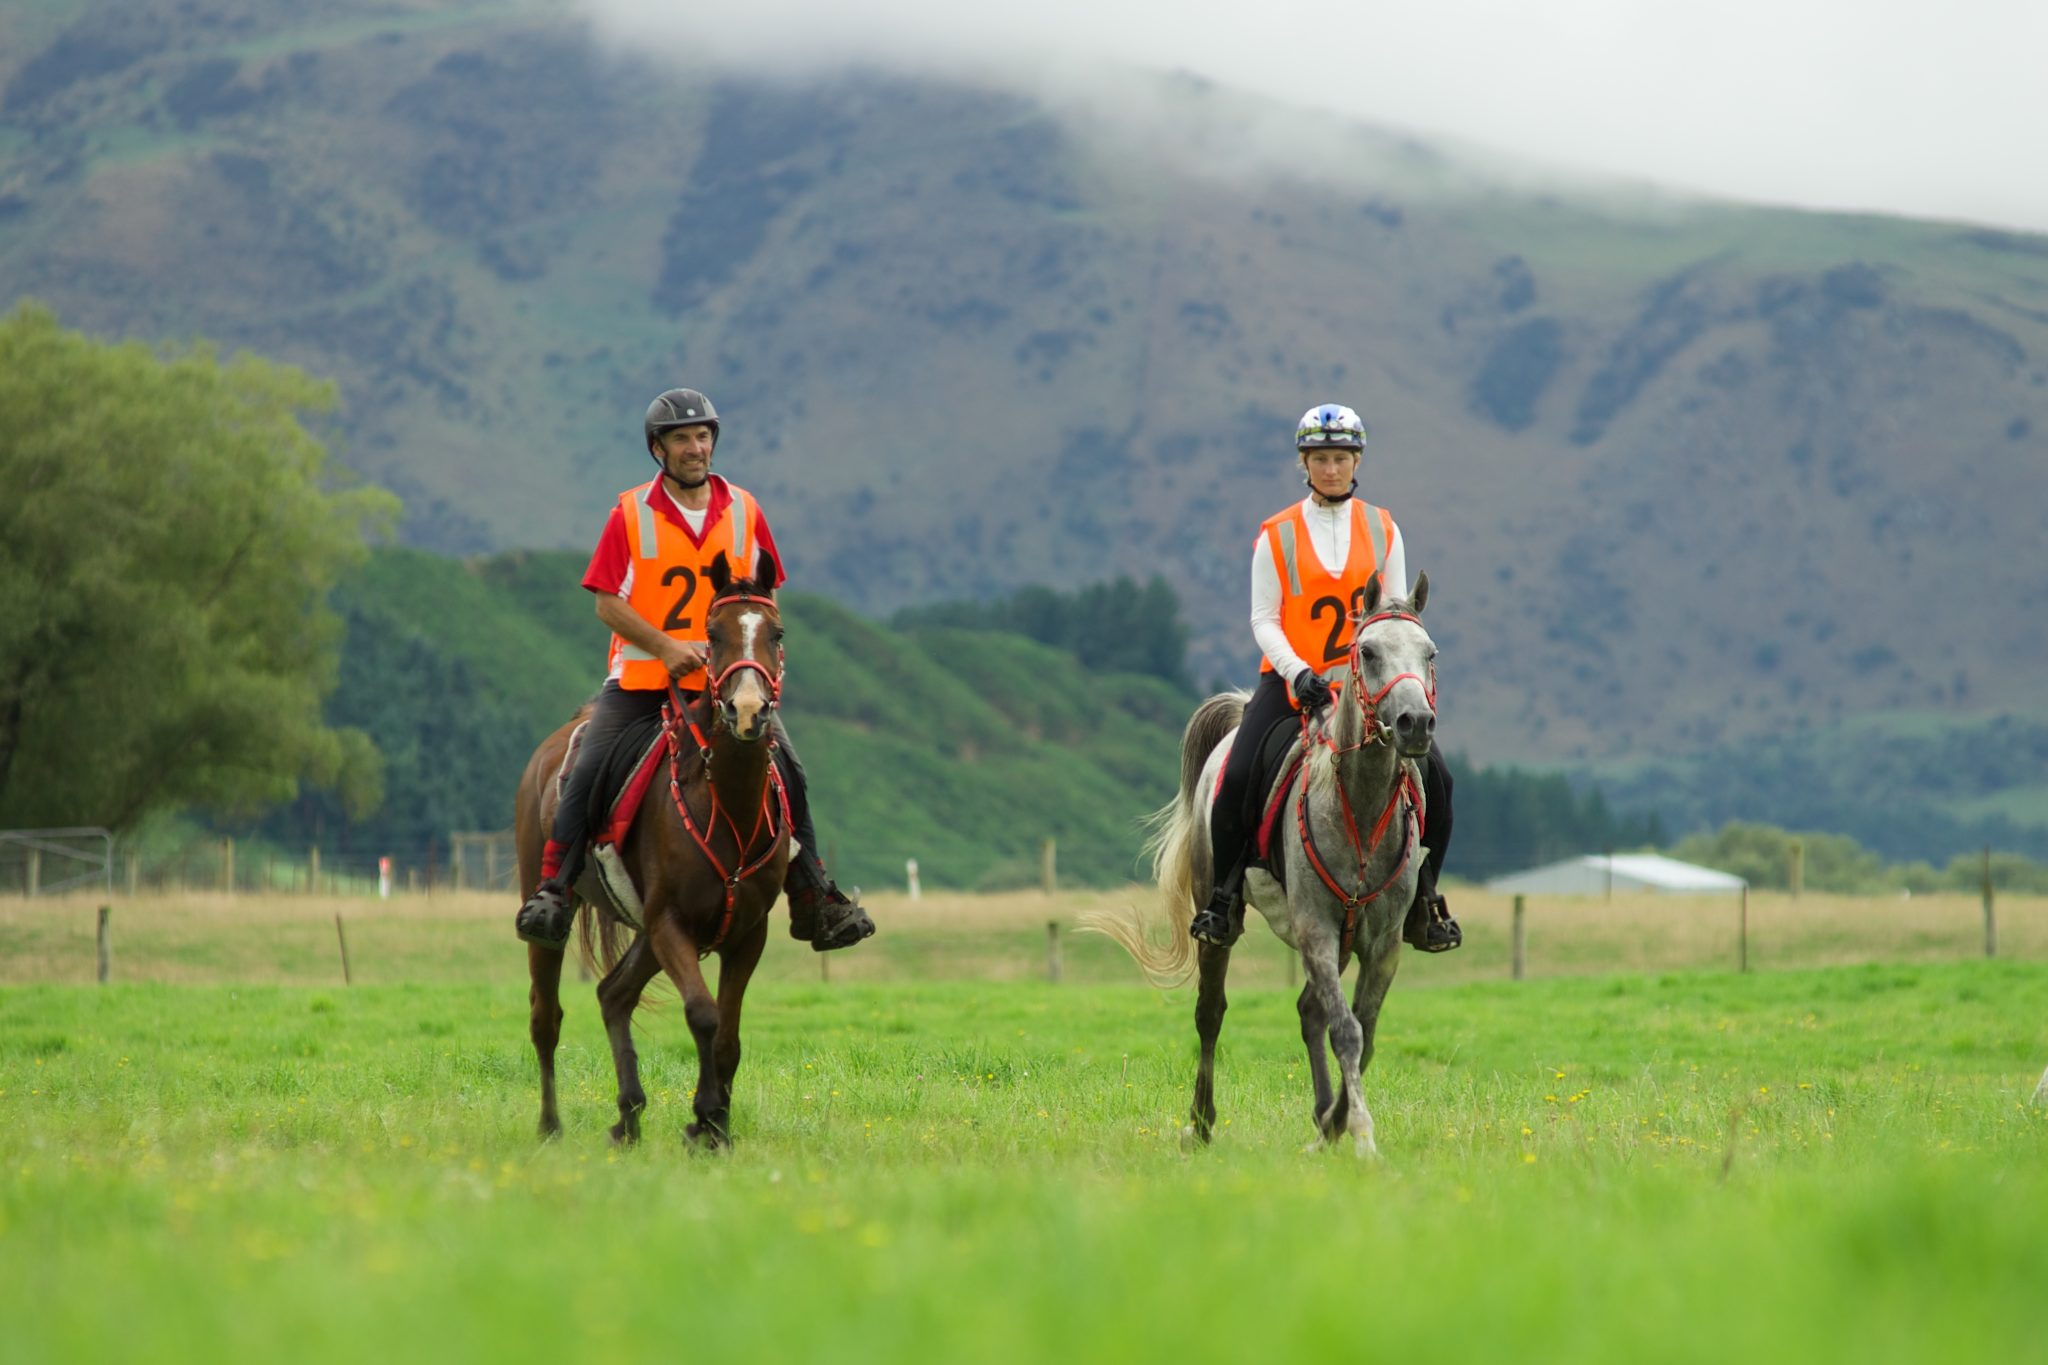 Endurance World South Island Championship. Riding together.